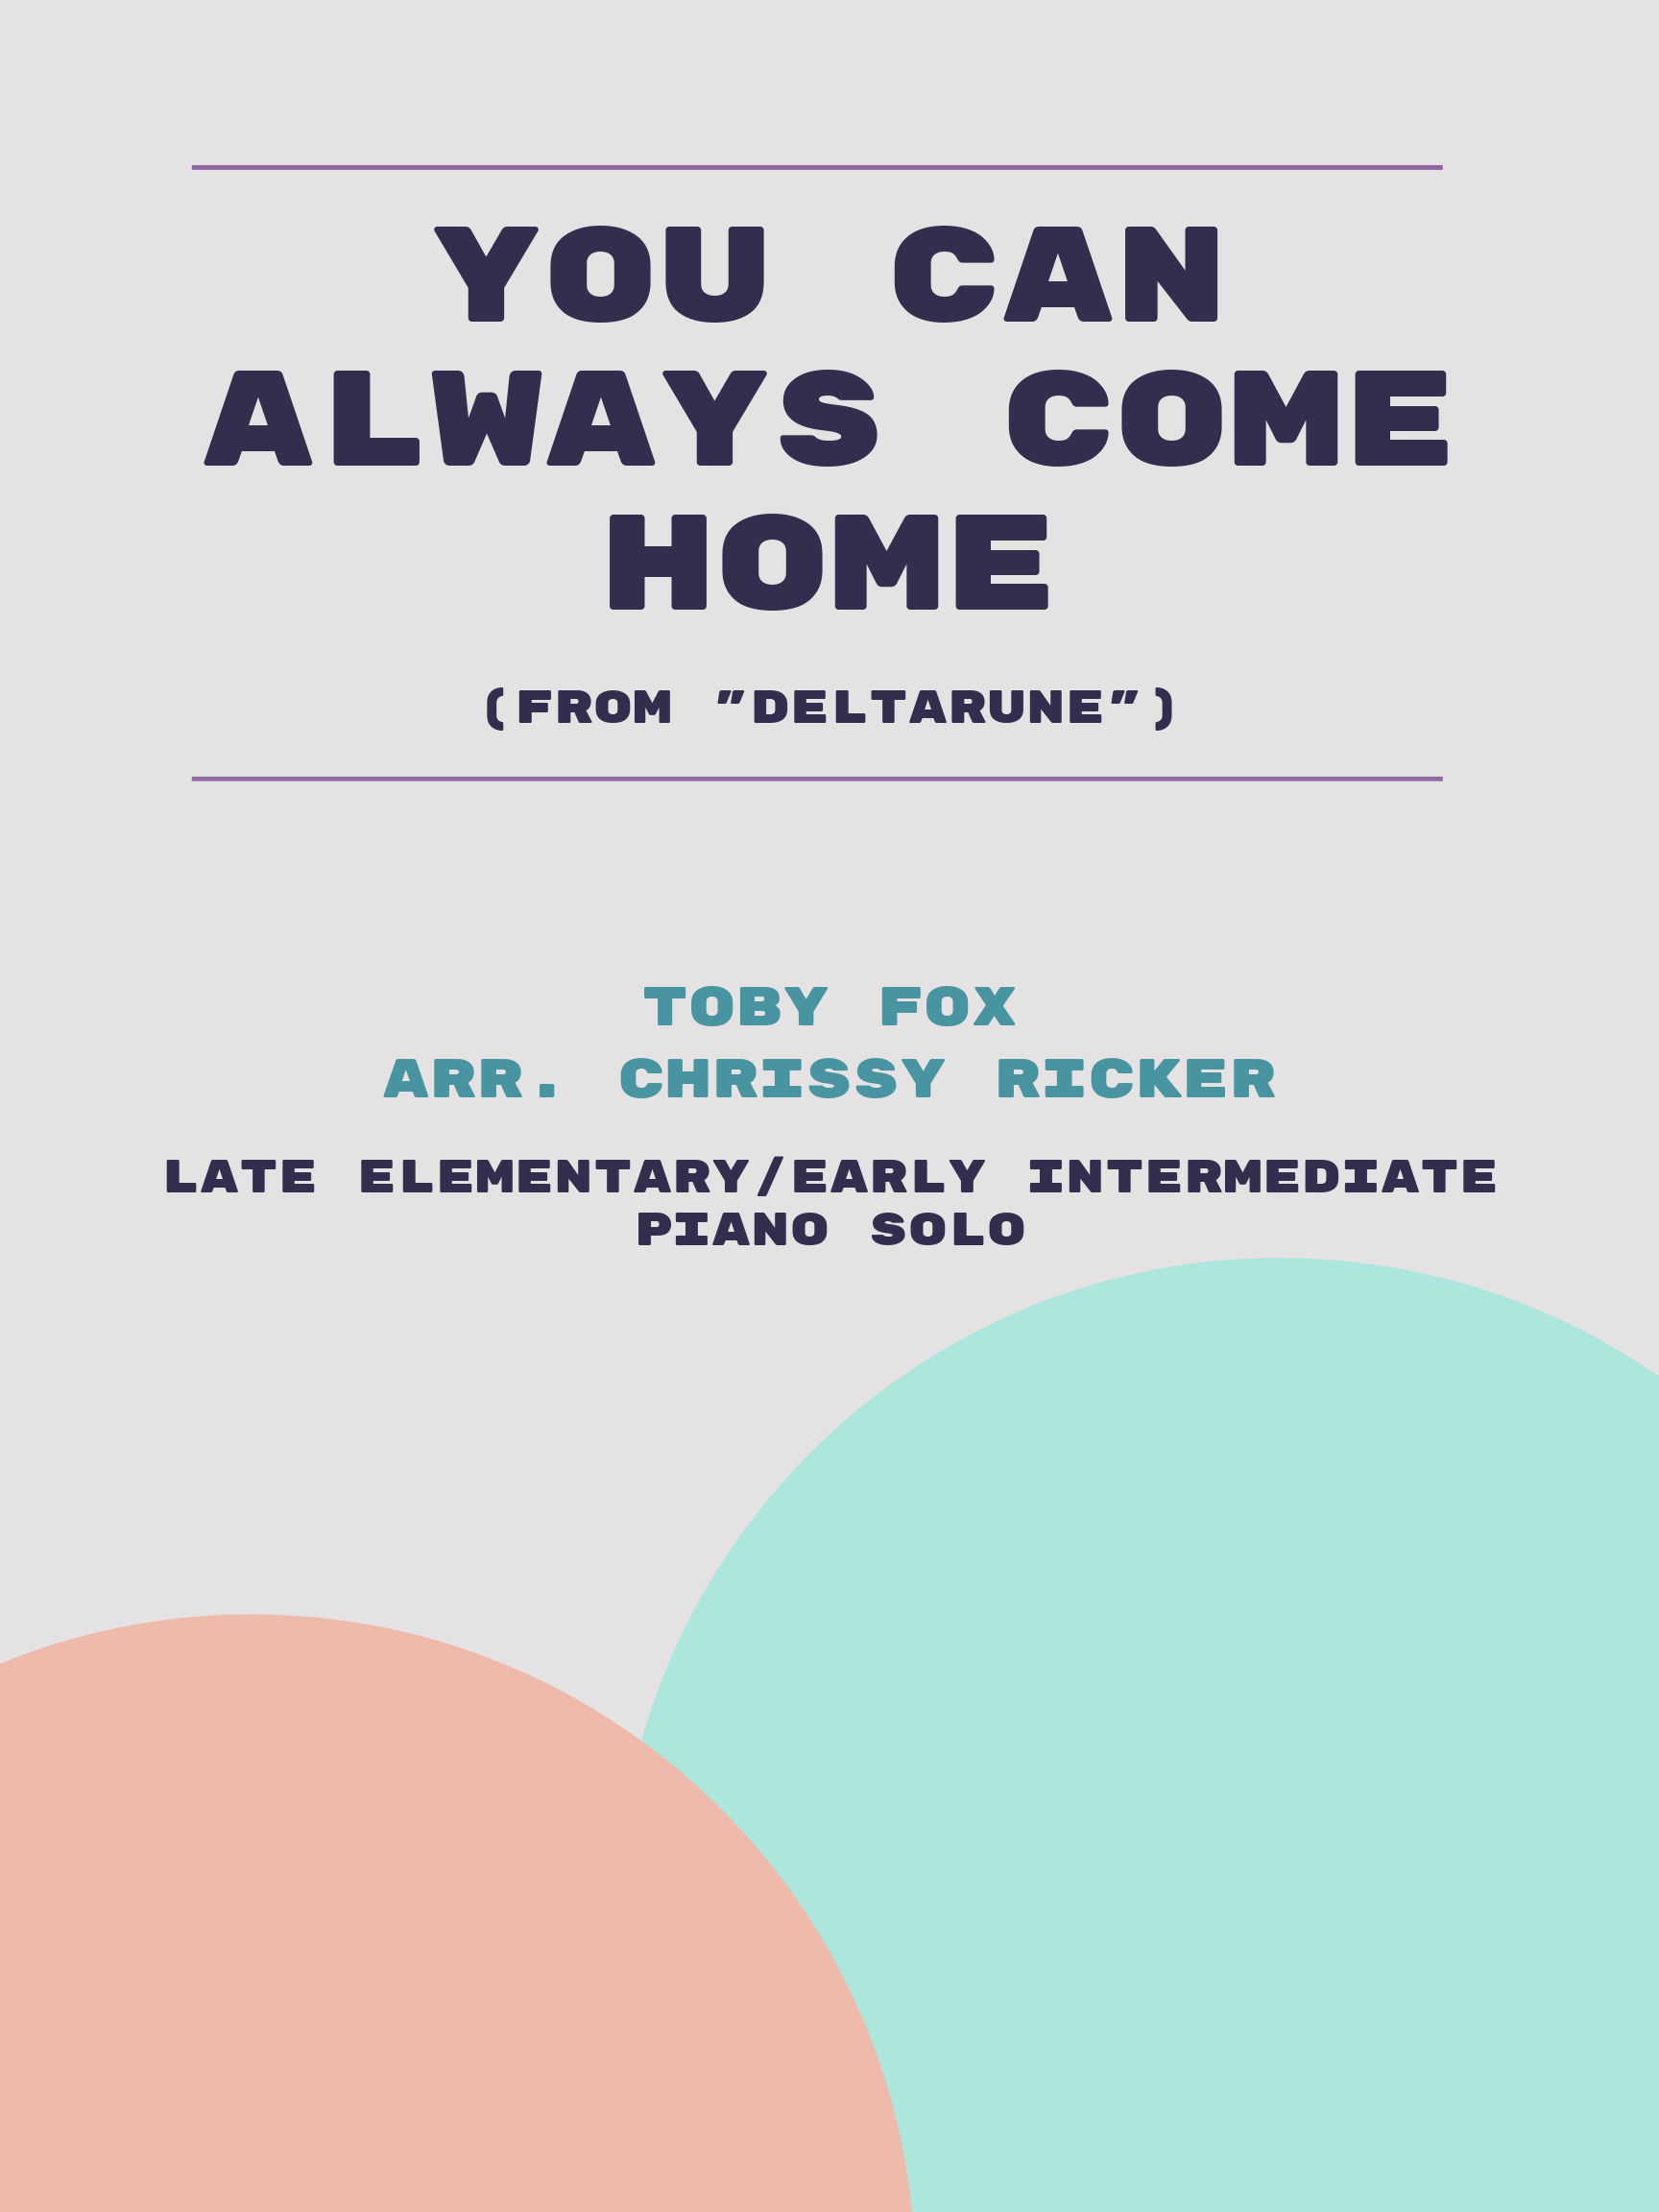 You Can Always Come Home by Toby Fox